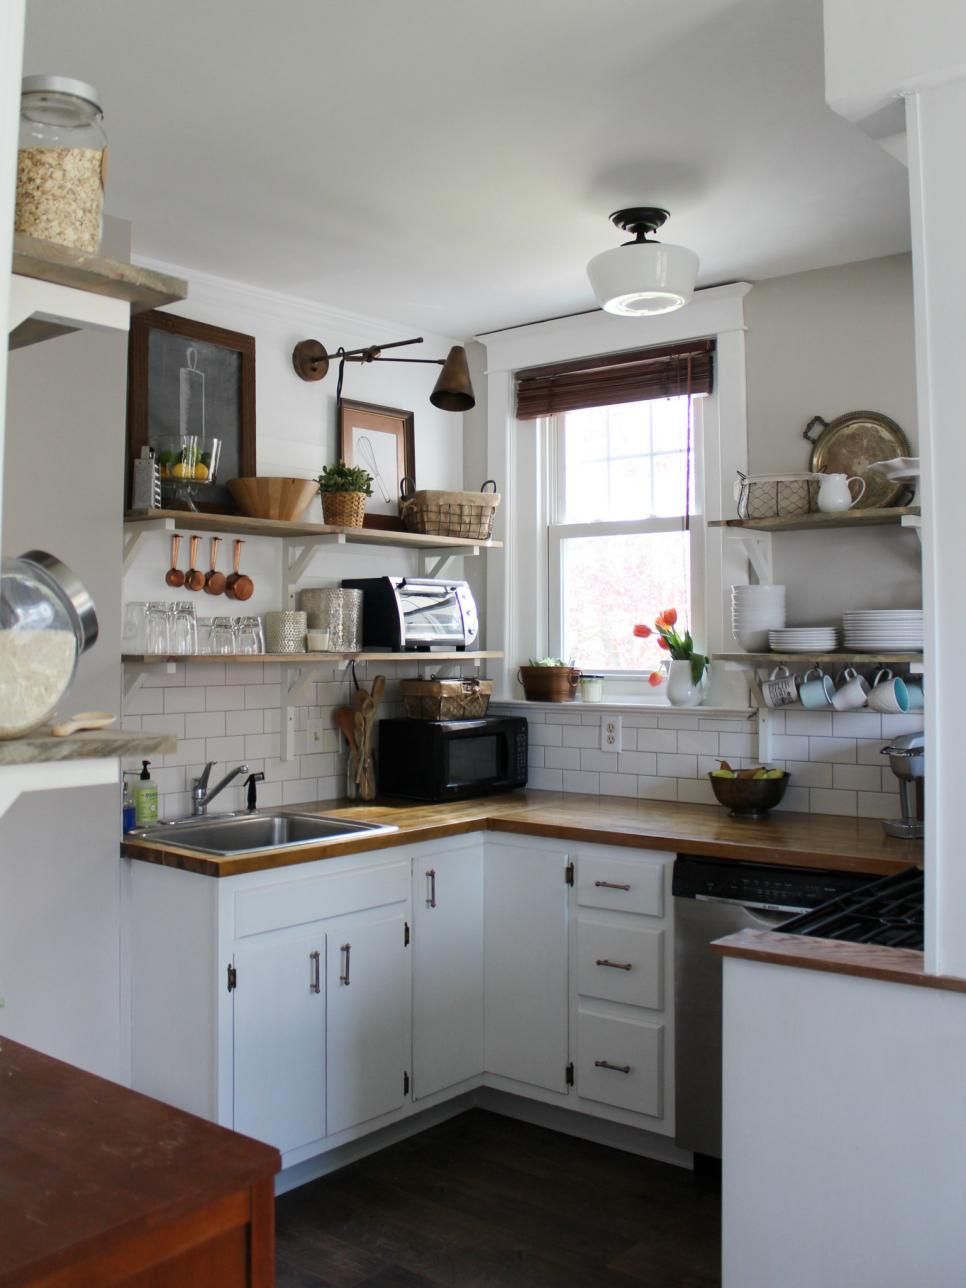 Before-and-After Kitchen Remodels on a Budget | Küche | Pinterest ...